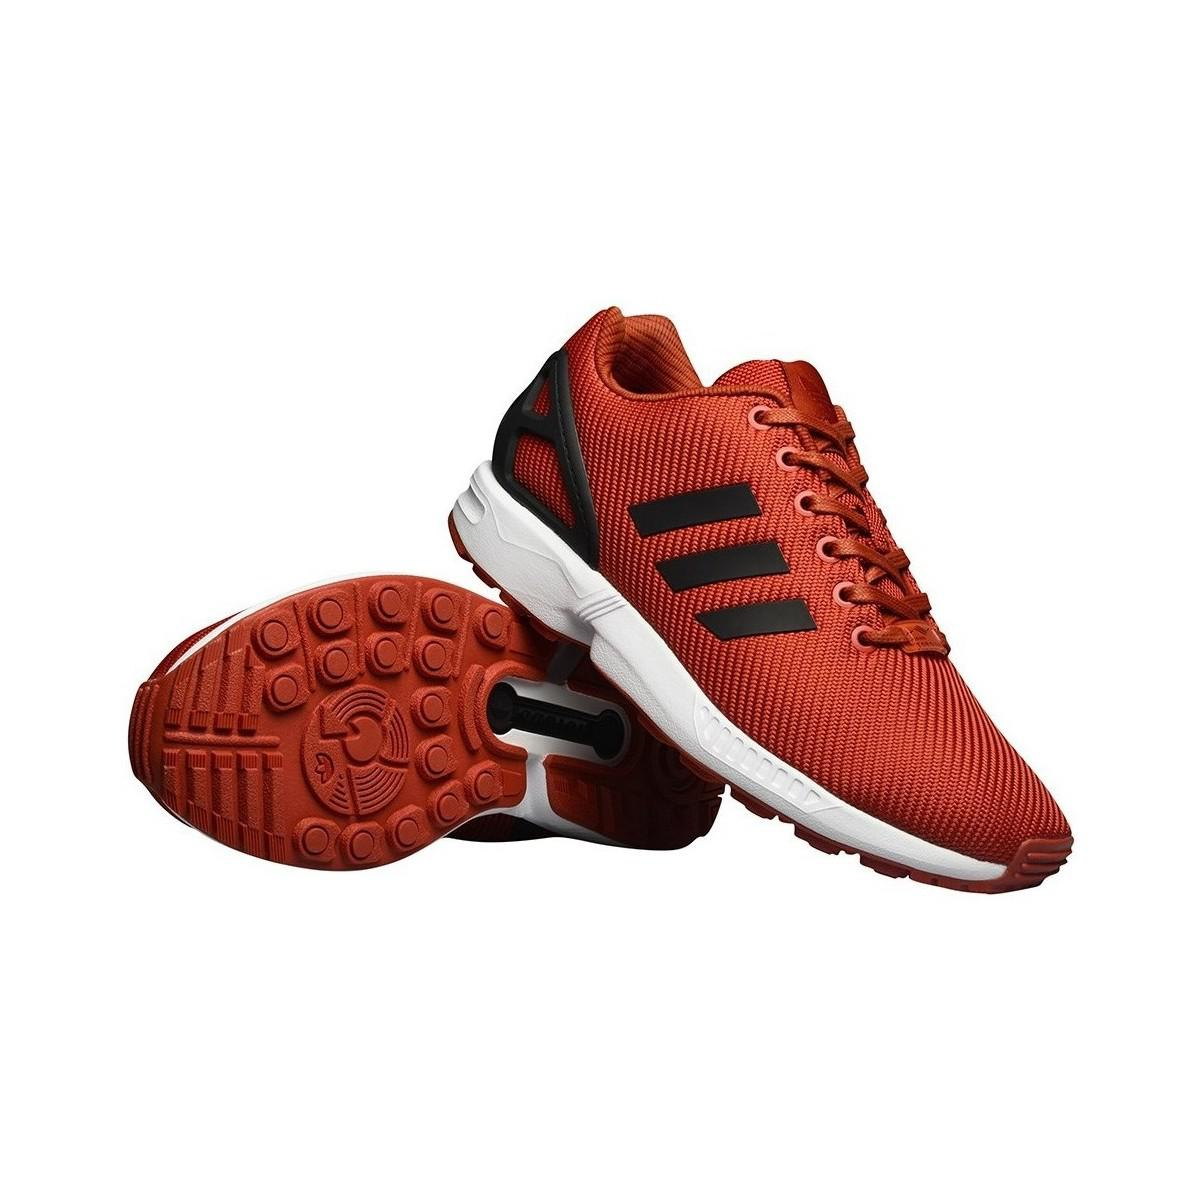 4817979c8 Adidas Zx Flux Craft Chili Men s Shoes (trainers) In Black in Black ...